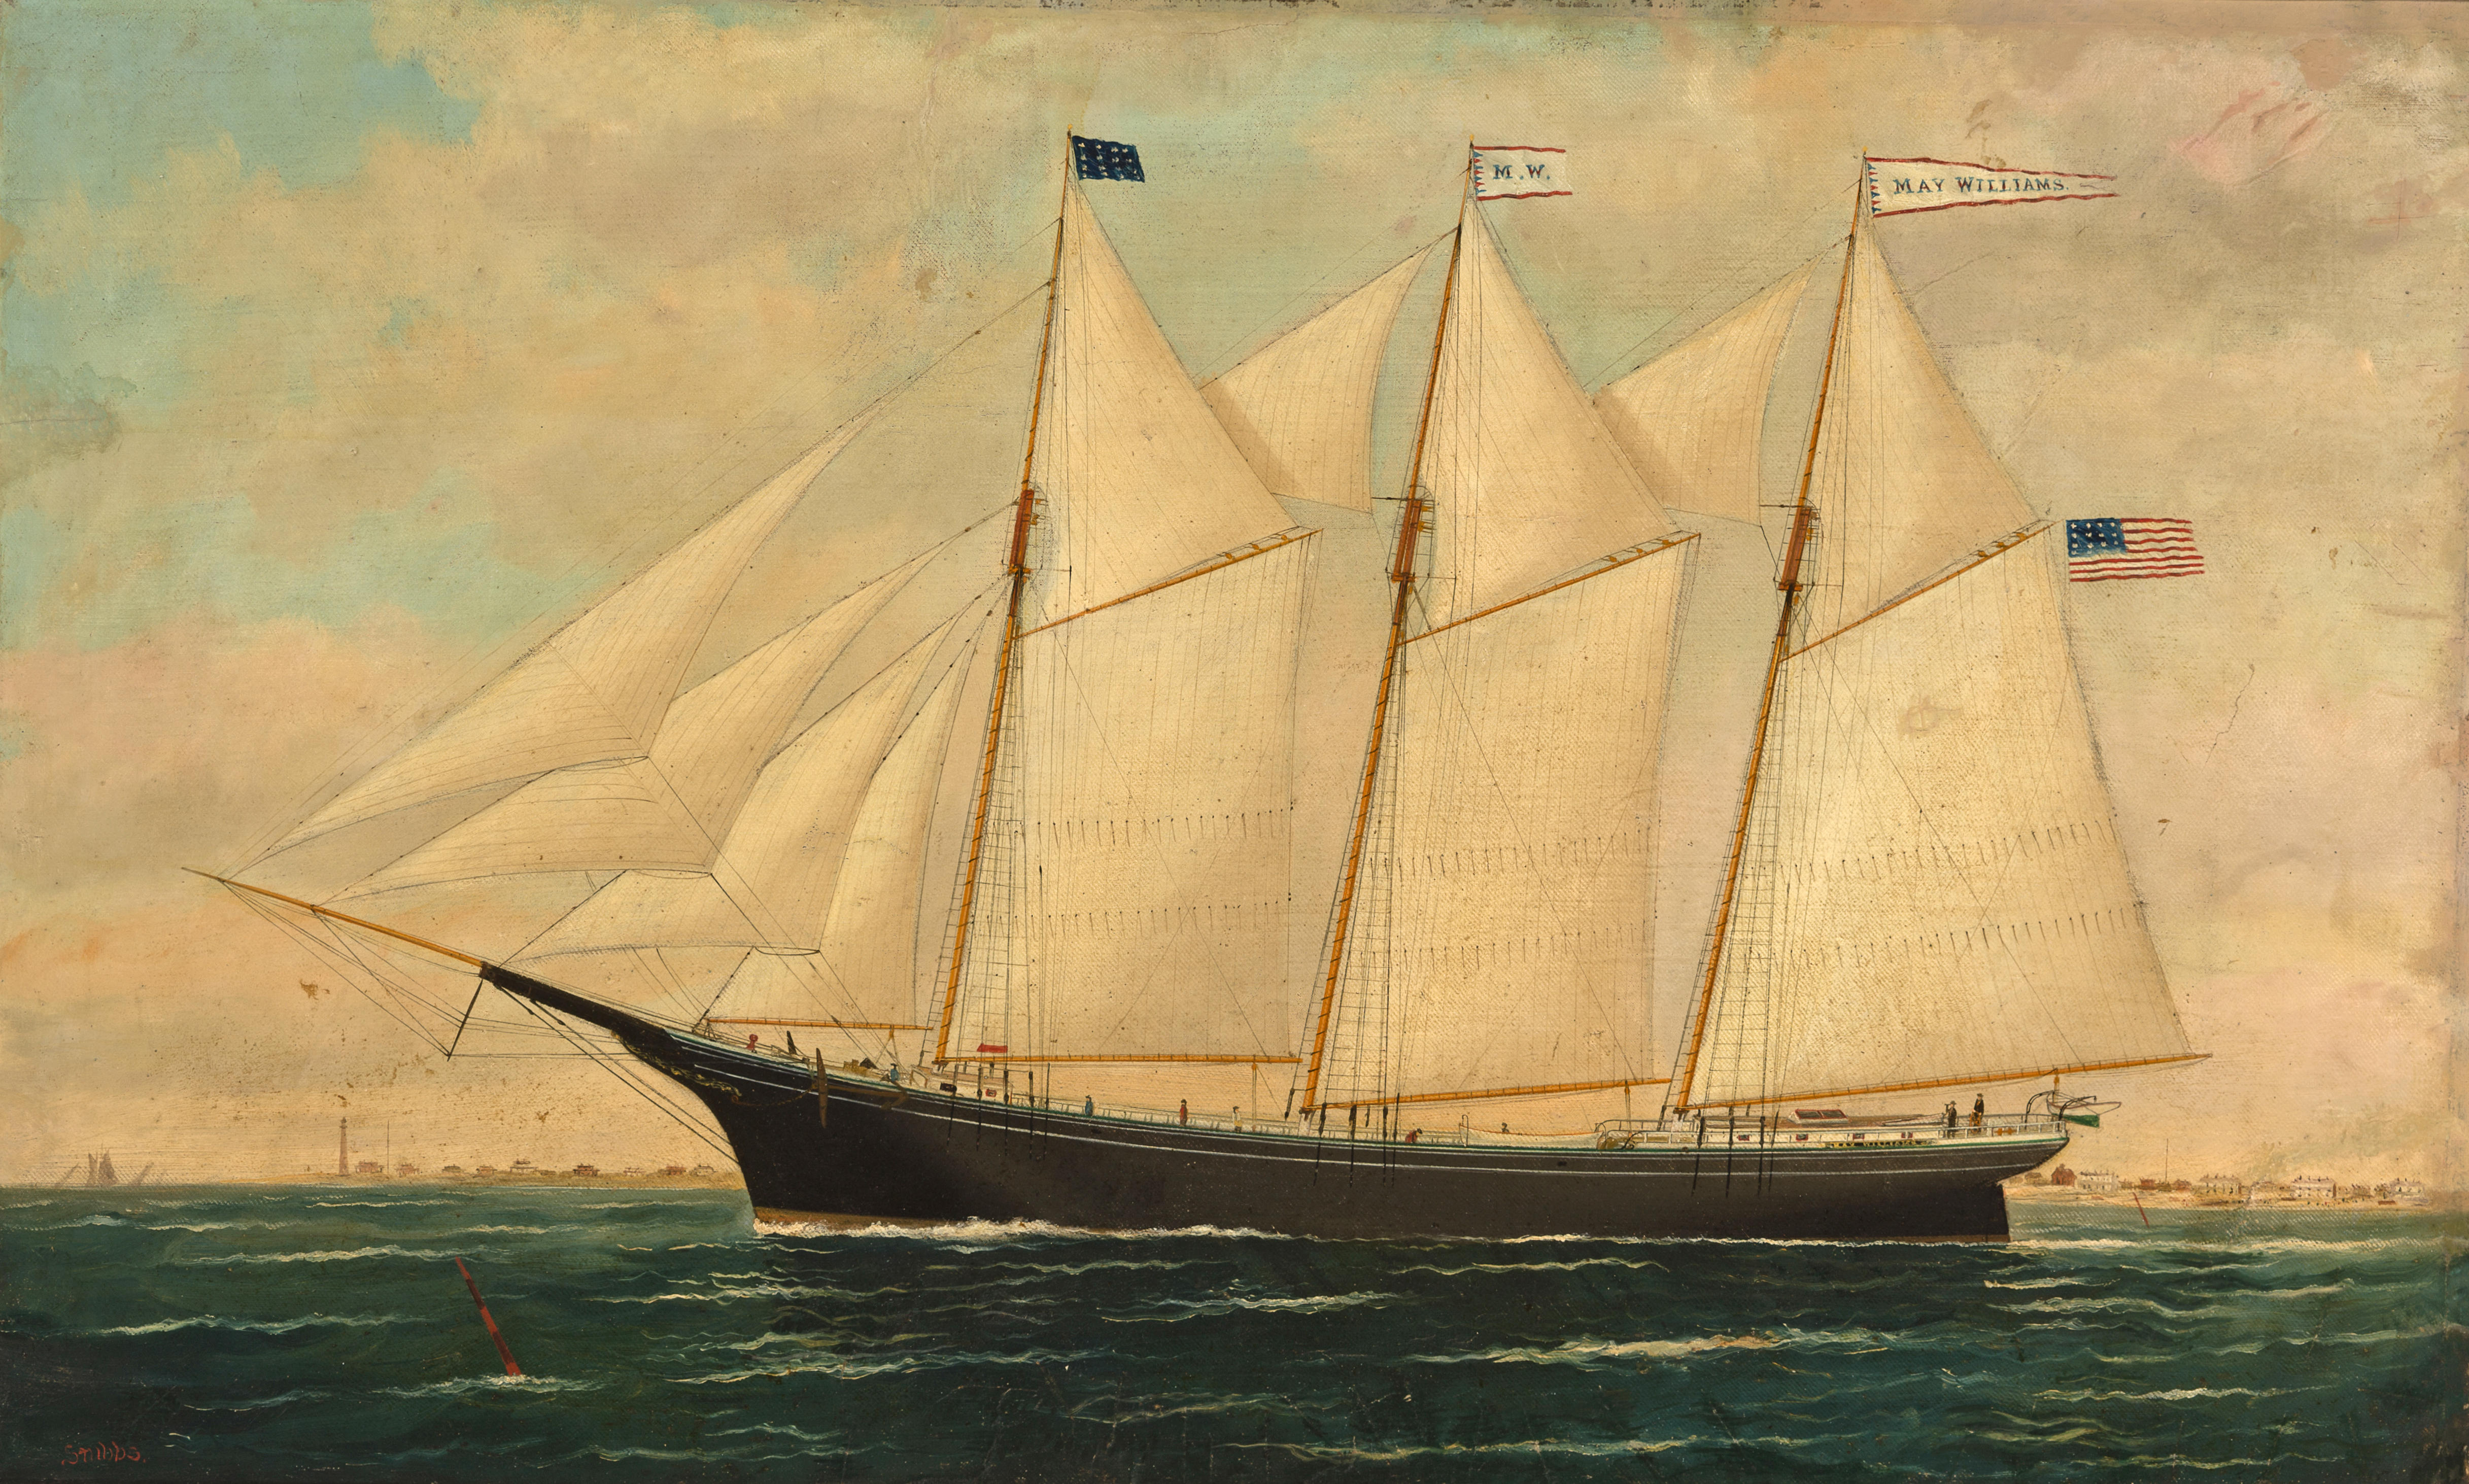 Lumberman three masted schooner